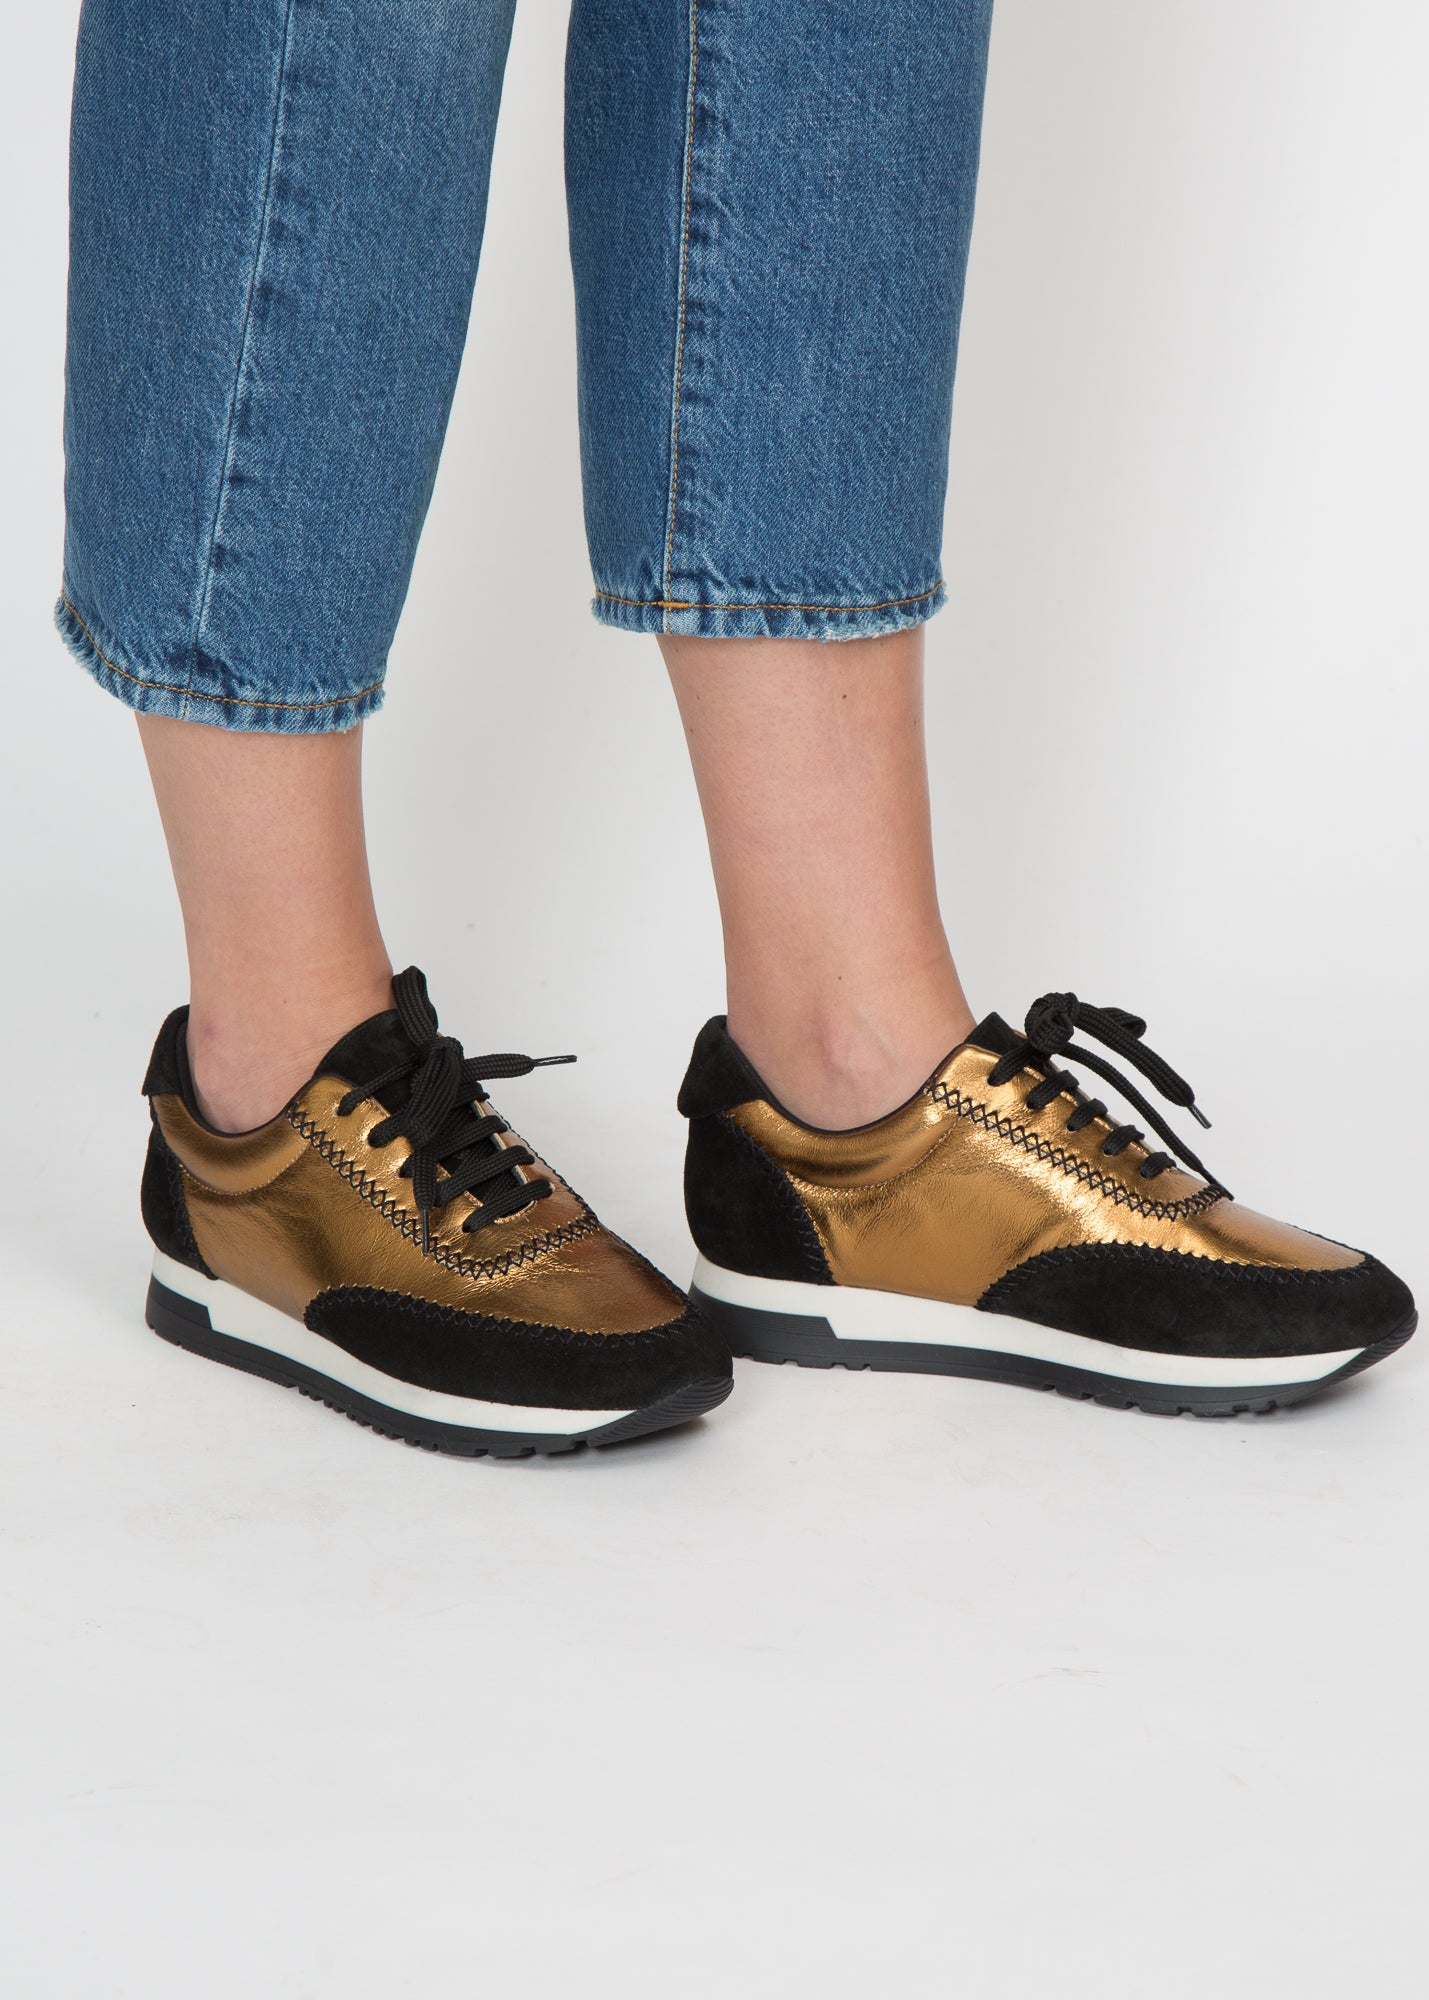 Paule Ka Stitched Leather Sneaker Bronze + Black Suede